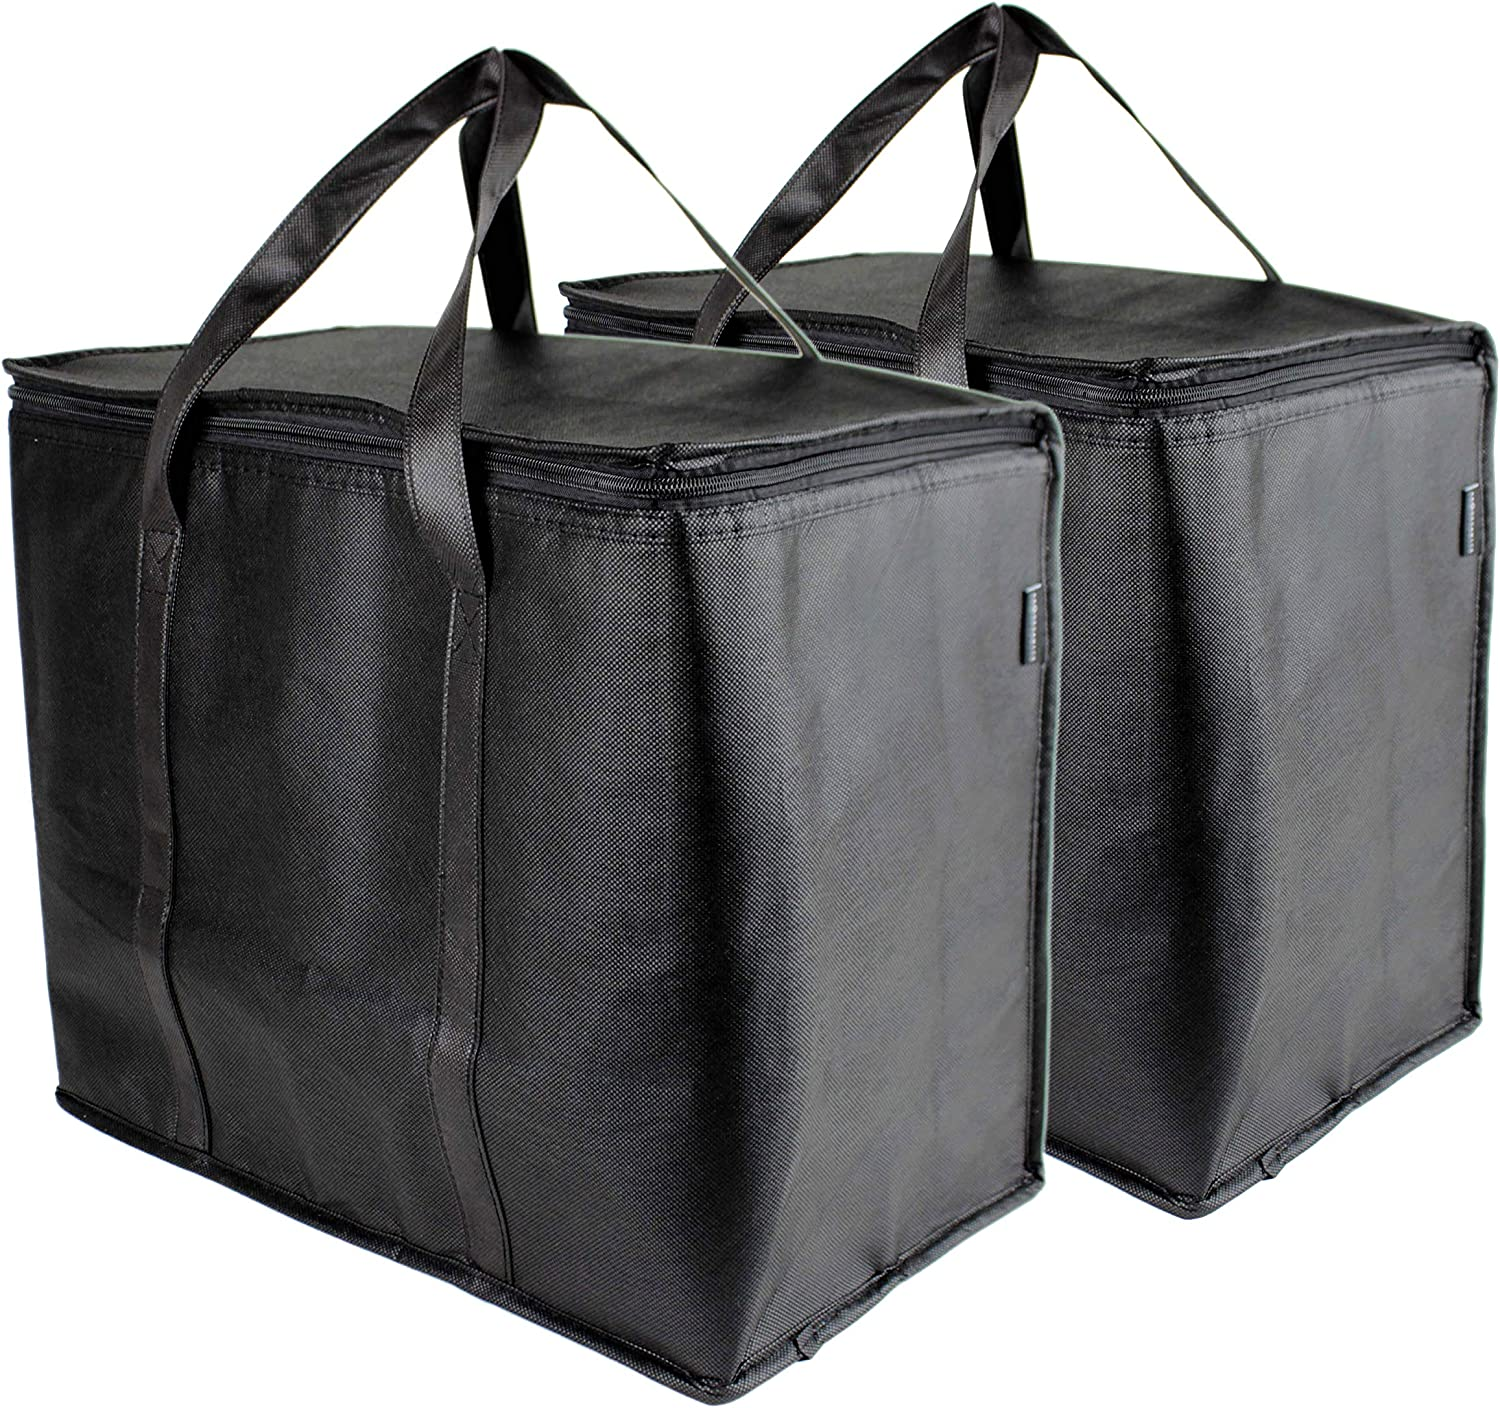 SB Organics Insulated Thermal Food Delivery Bag - Portable Lunch Bag Great for Grocery Shopping, Catering Supplies, and Food Transportation - Use as Food Warmer and Cooler - 15 x 9 x 12-Inches 2PK